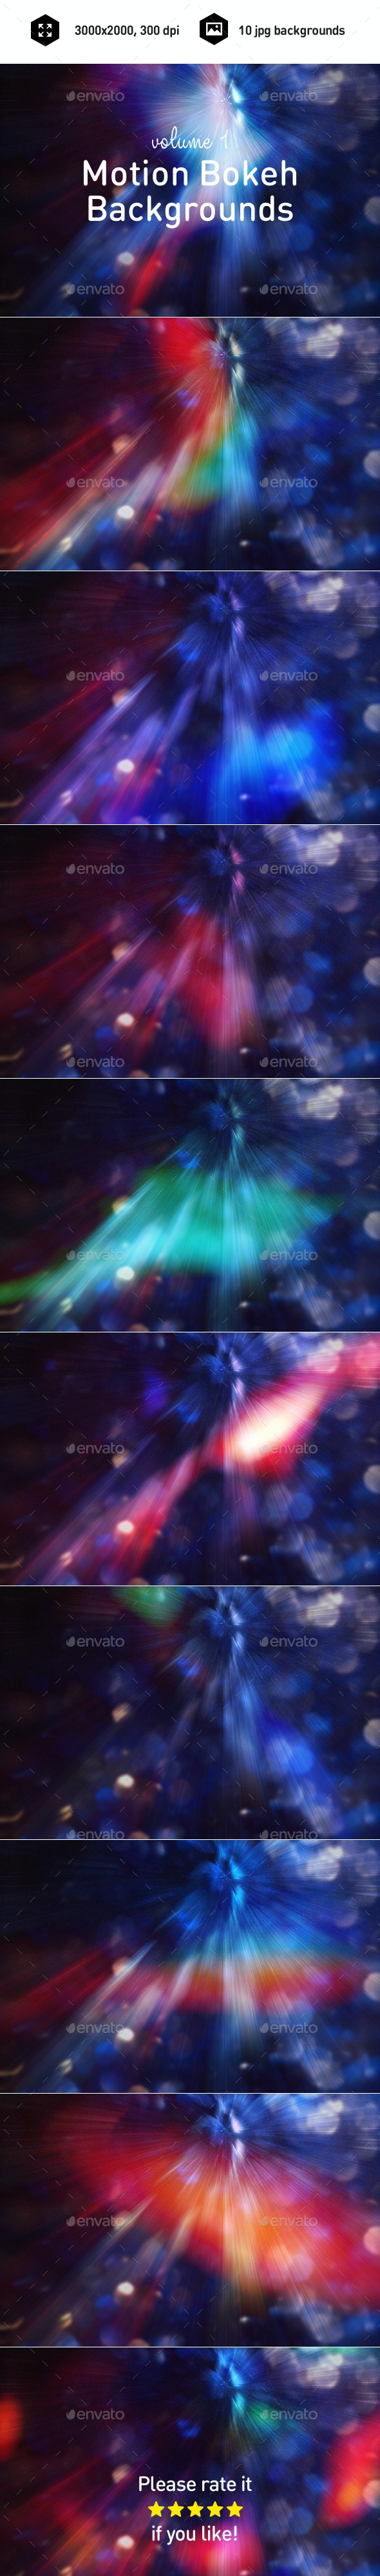 Motion Bokeh Backgrounds  - Abstract Backgrounds